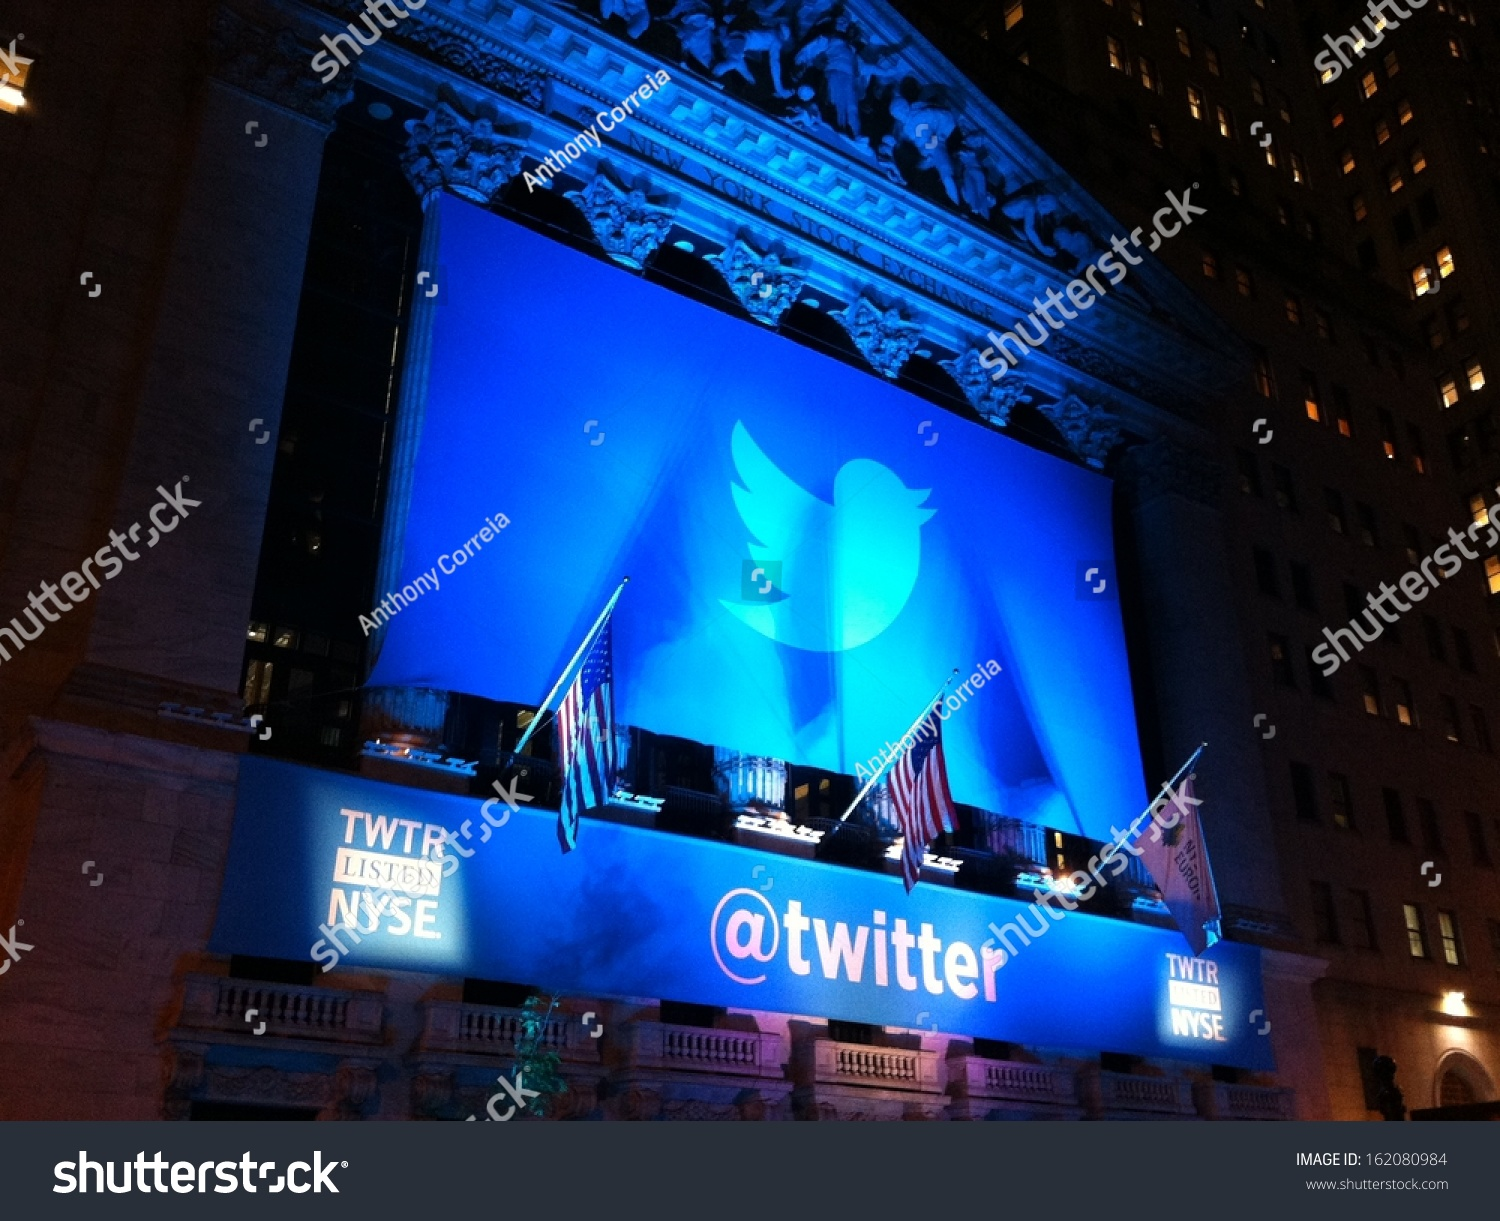 New york november 7 twitter logo stock photo 162080984 shutterstock new york november 7 the twitter logo is shown in front of the nyse buycottarizona